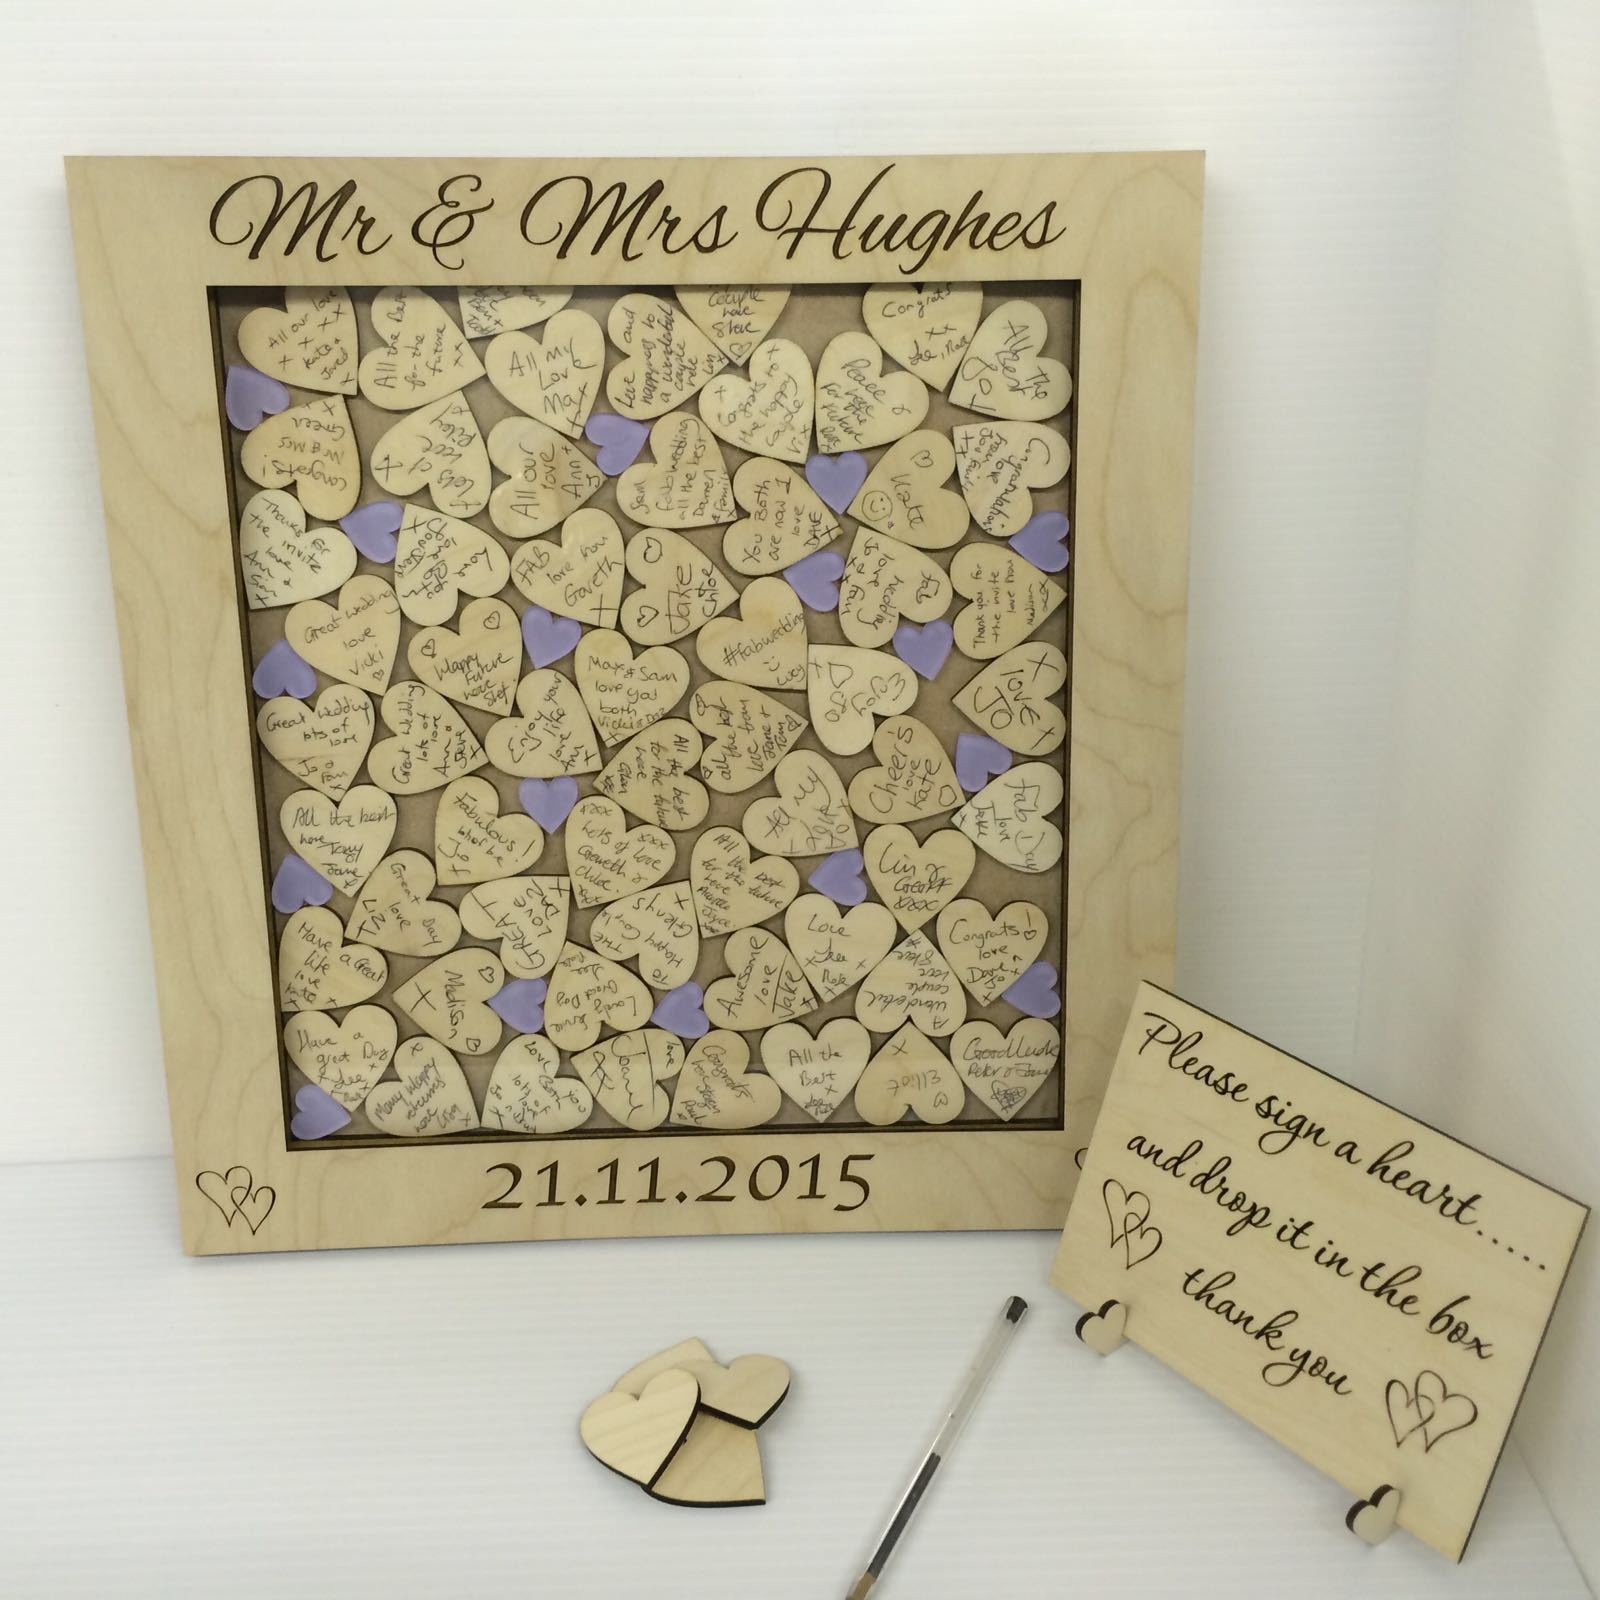 Personalised birch plywood lilac hearts drop box wedding guest book gift rustic